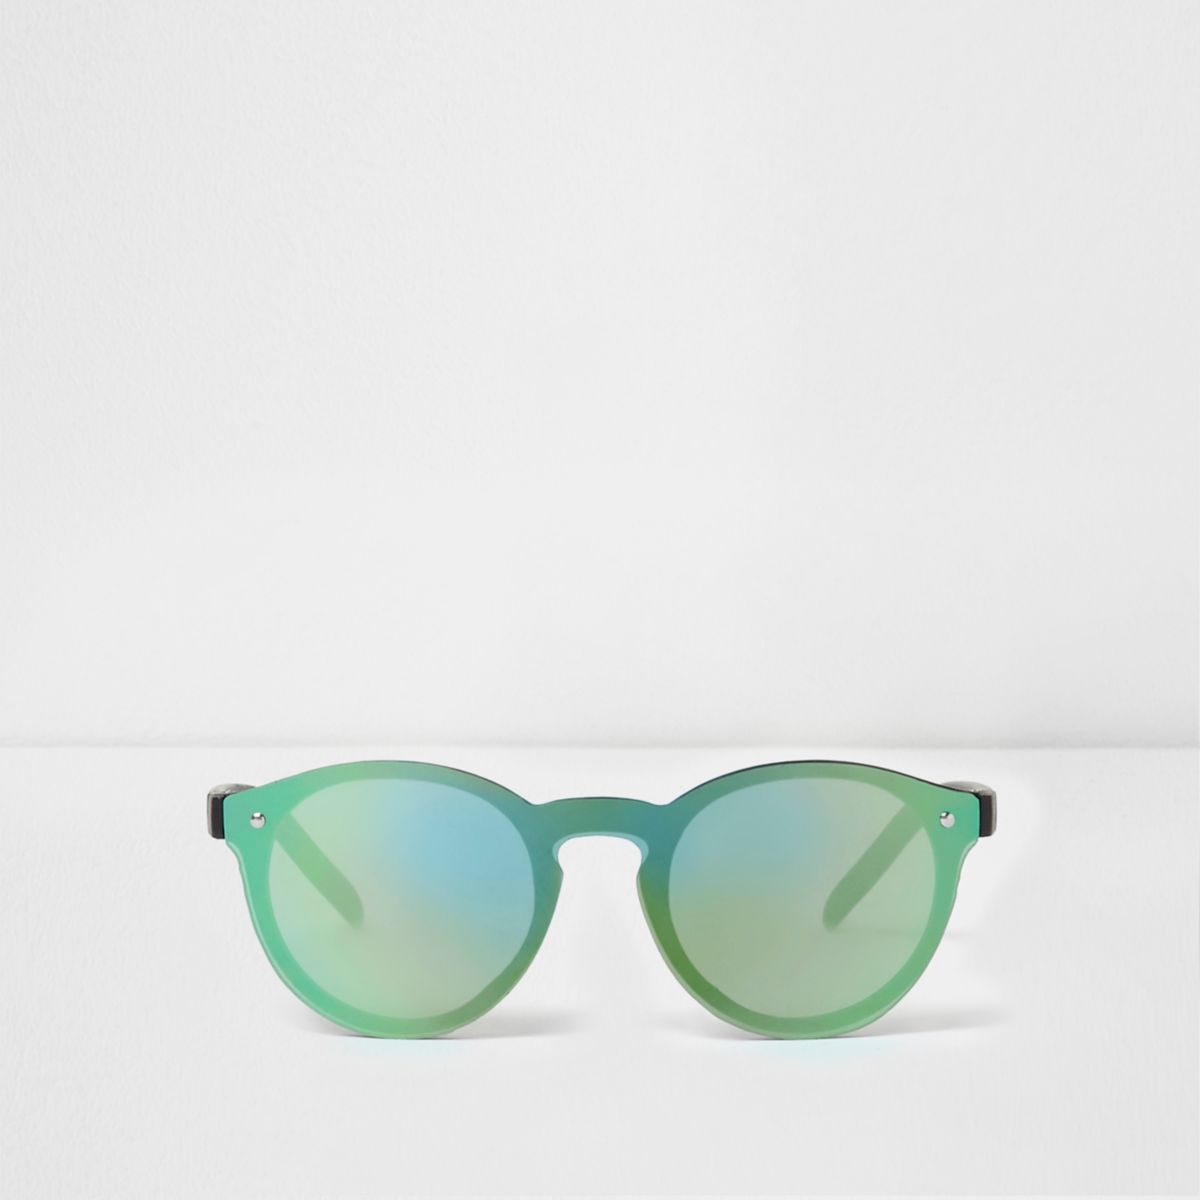 Boys green laid on lens retro sunglasses